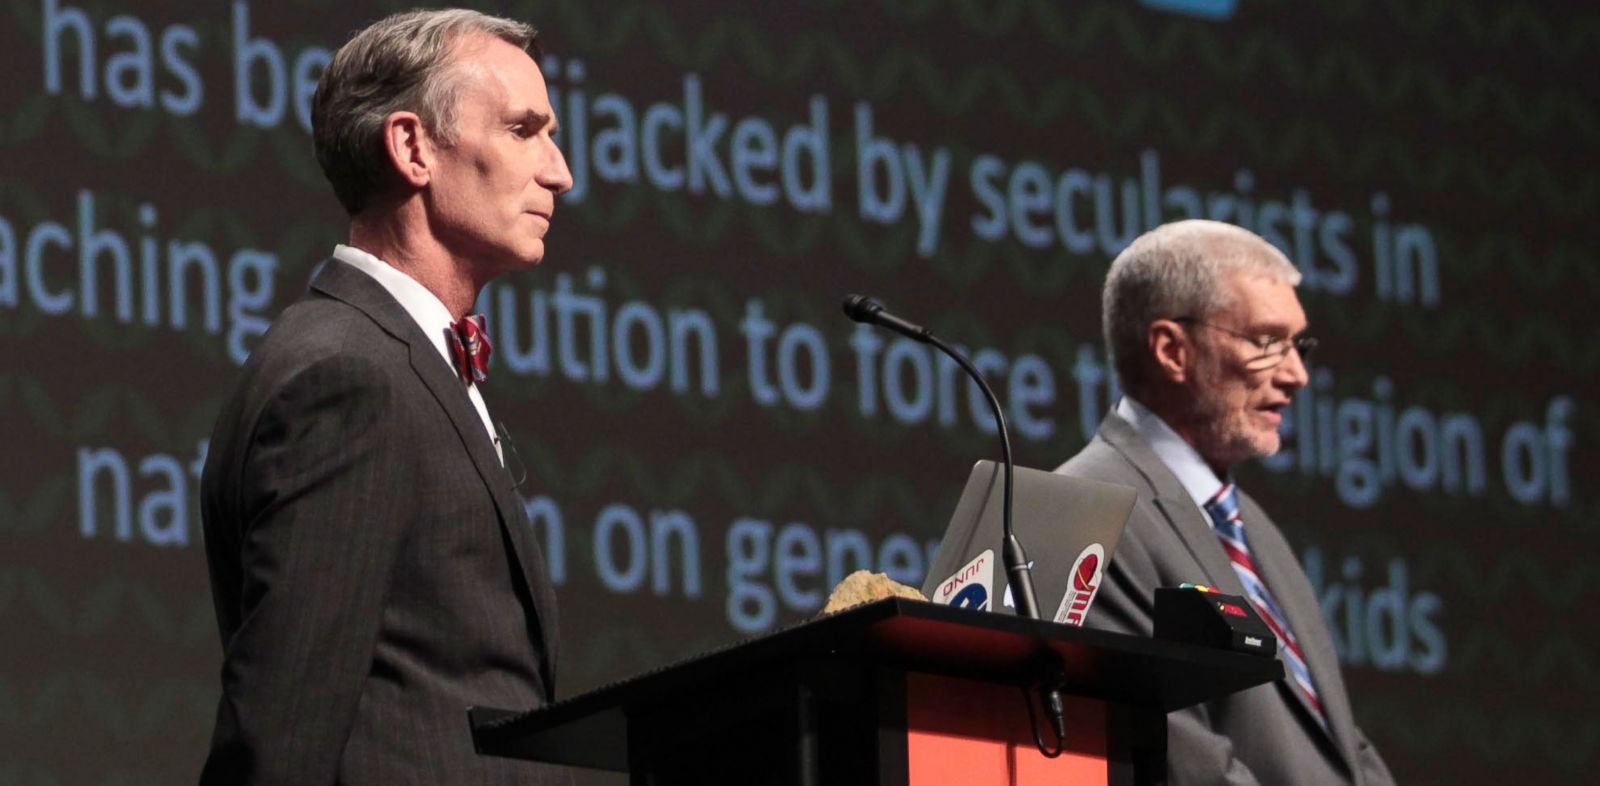 PHOTO: Creation Museum head Ken Ham, right, speaks during a debate on evolution with TVs Bill Nye, at the Creation Museum, Feb. 4, 2014, in Petersburg, Ky.